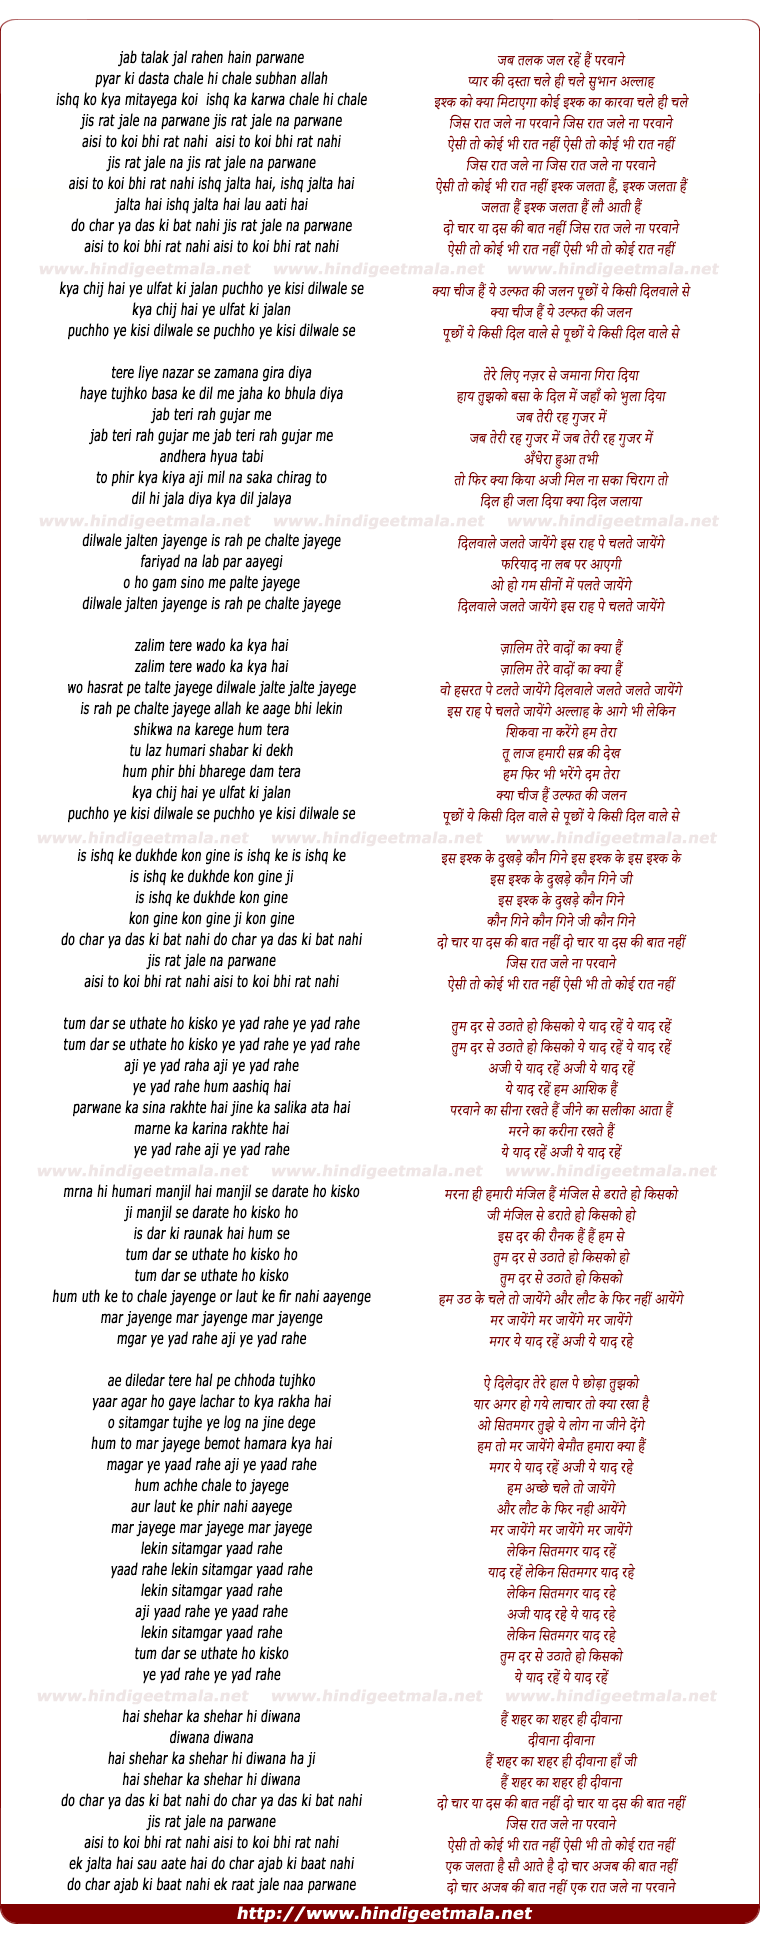 lyrics of song Jis Raat Jale Na Parwane, Aisi To Koi Bhi Raat Nahi